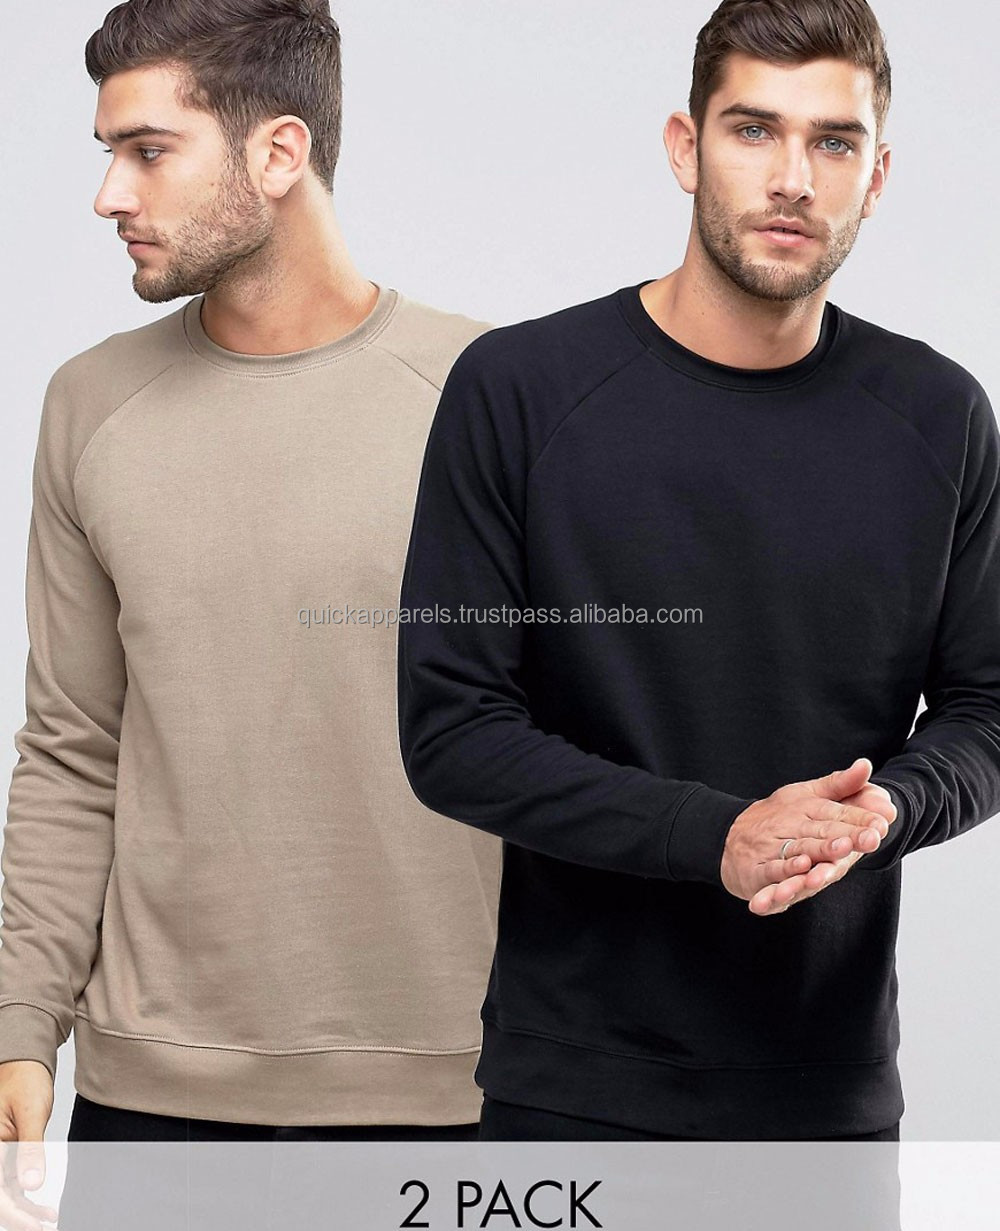 wholesale factory price best quality custom printed mens sweatshirts for importers, wholesalers, distributors sports